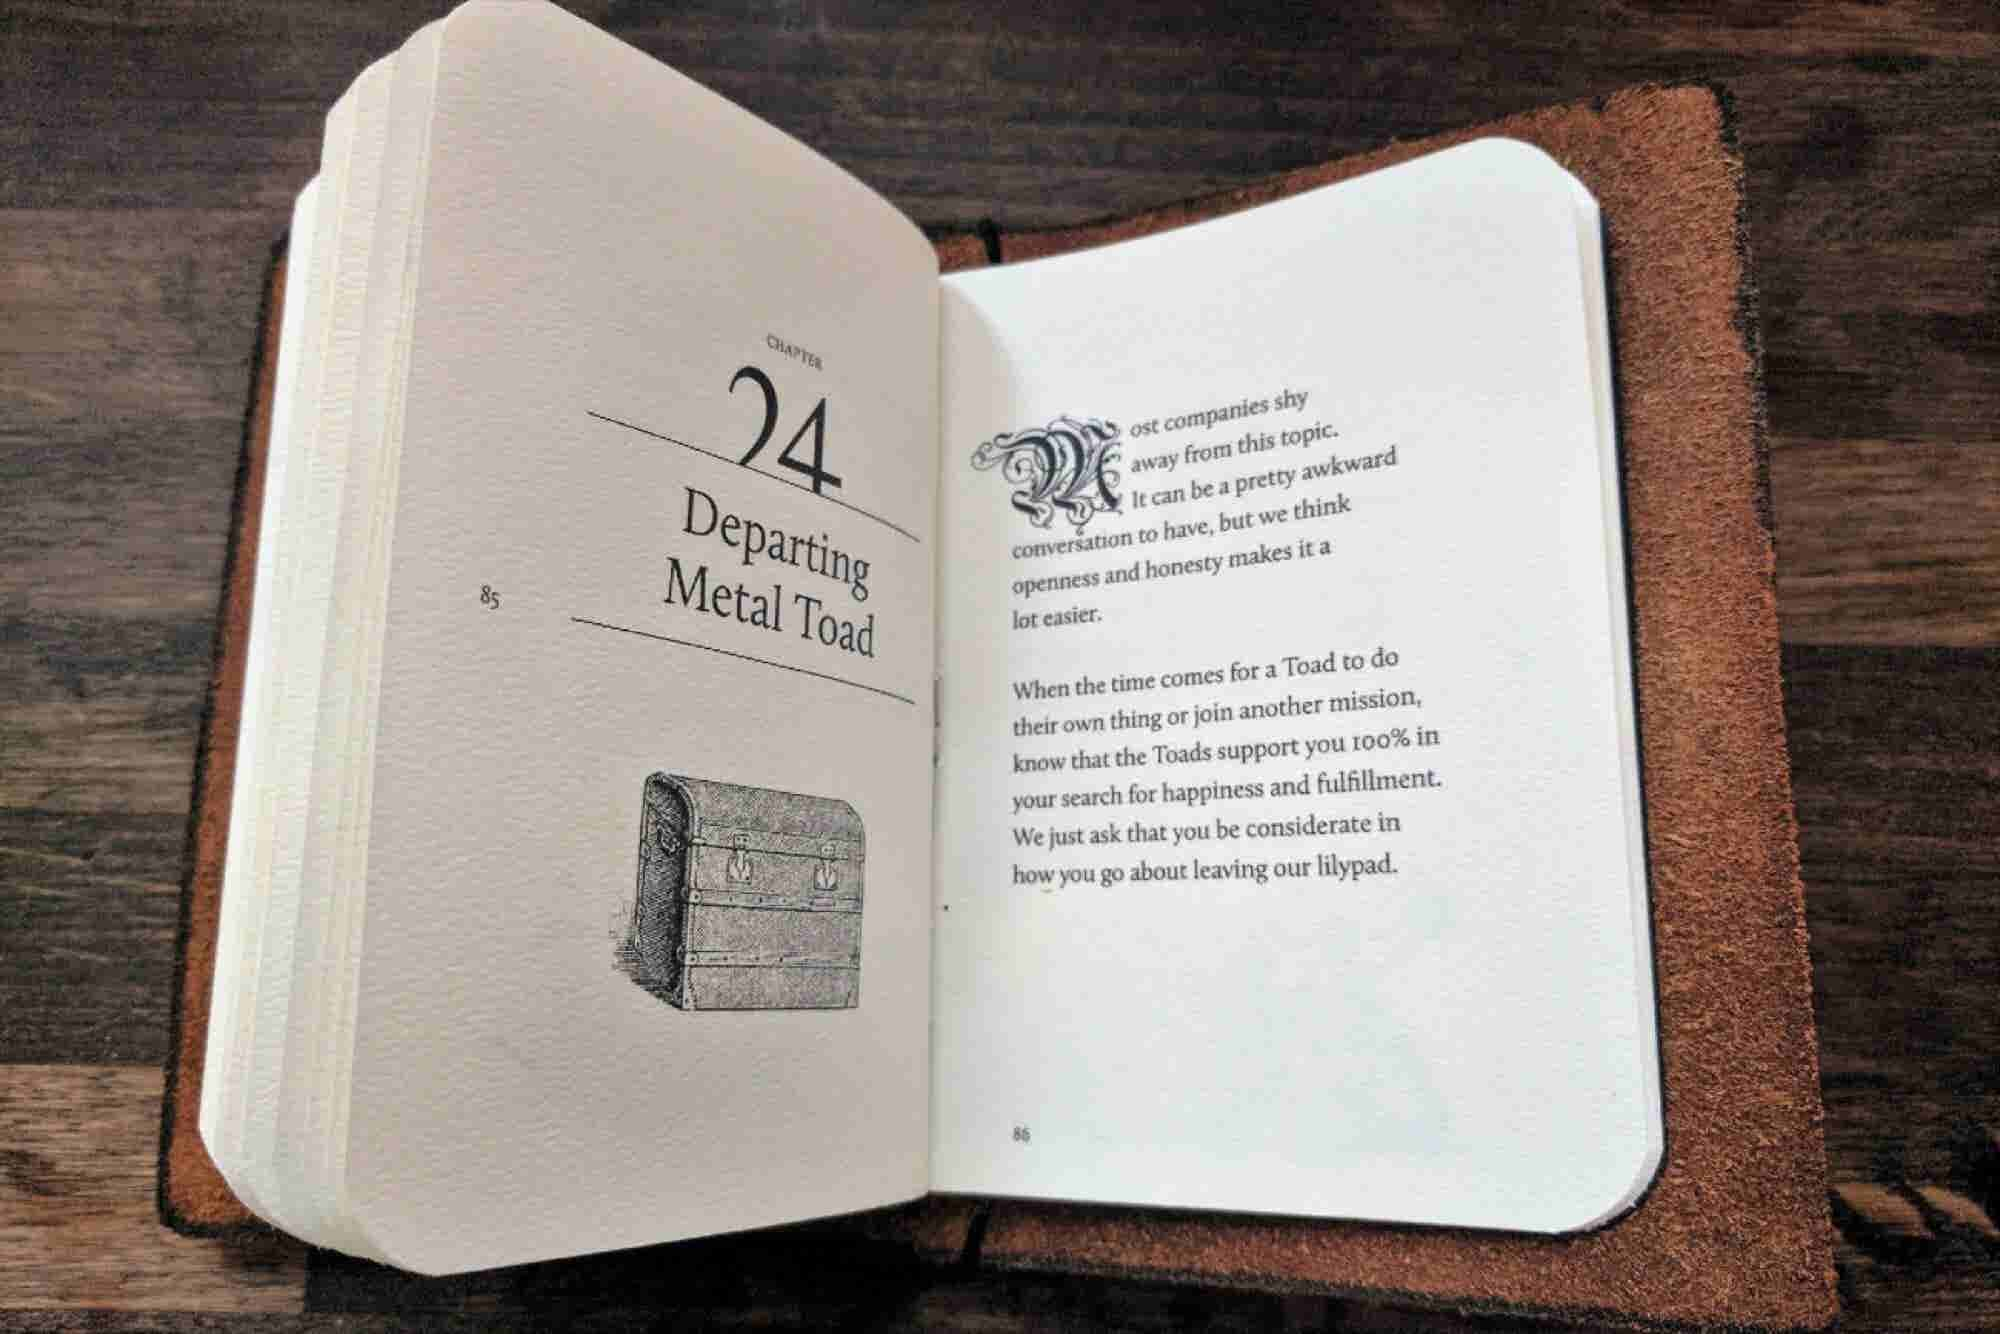 Most Employee Handbooks Are Terrible, So This Company Made a Leather-Bound Journal Inspired by 'Lord of the Rings'